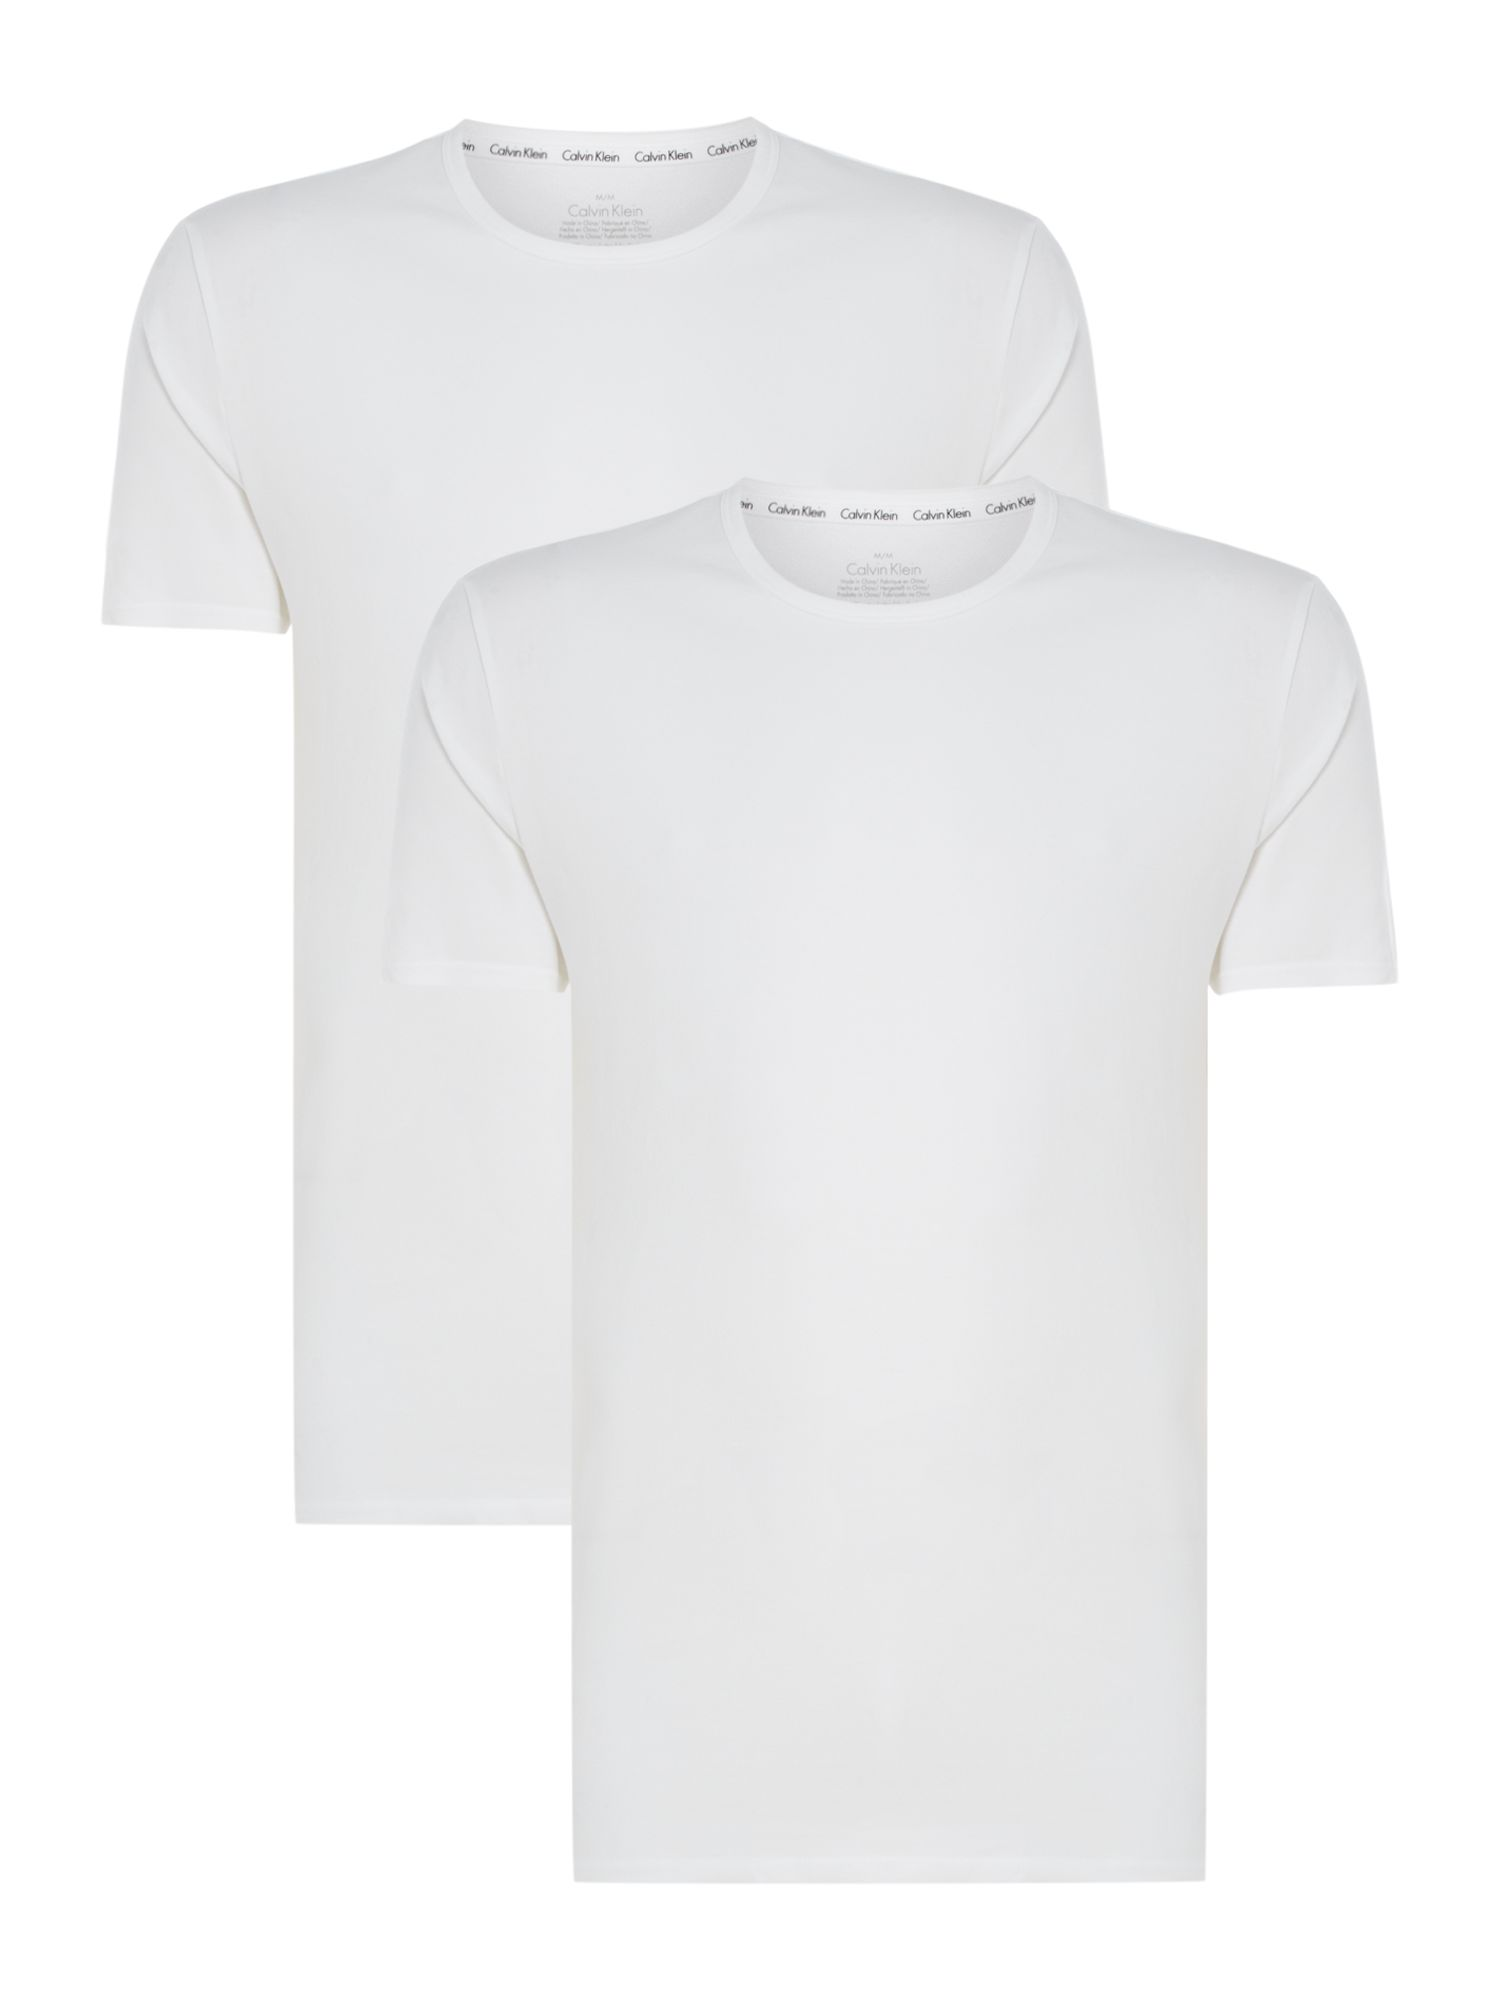 Men's Calvin Klein 2-Pack ID Crew Neck T-Shirt, White